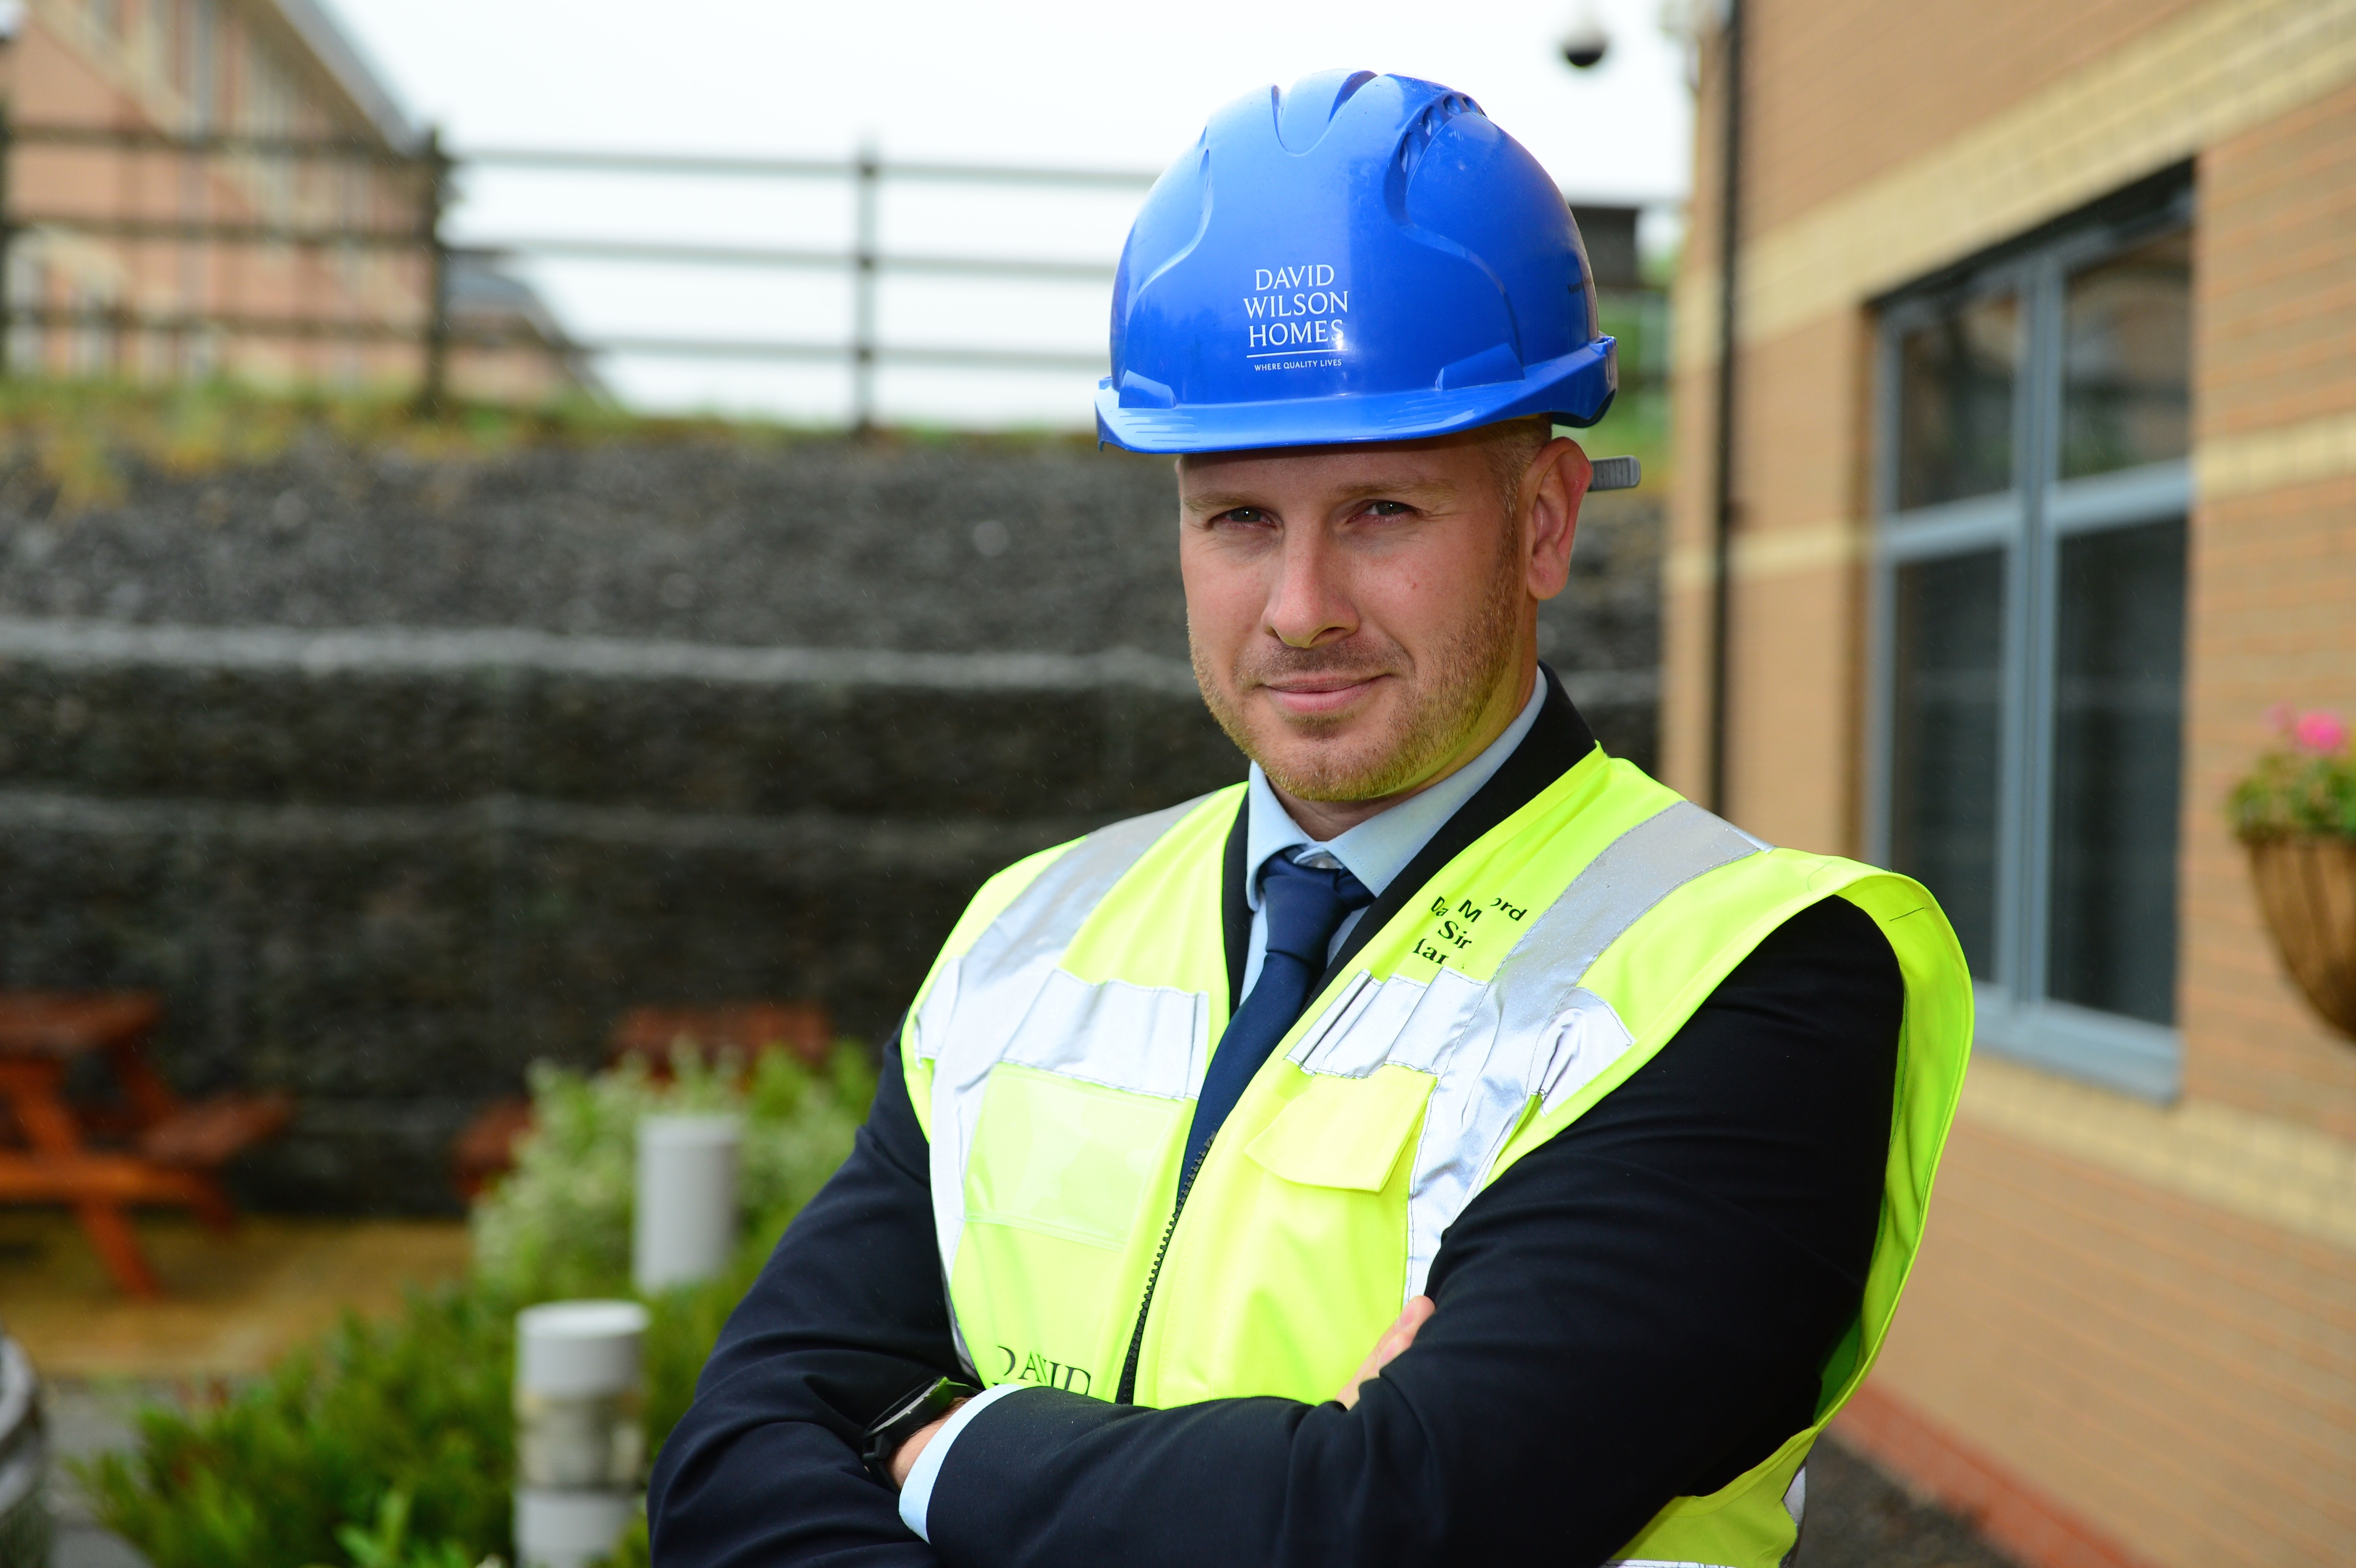 DAVID WILSON HOMES SITE MANAGER IN BINGHAM RECOGNISED AMONGST BEST IN THE COUNTRY